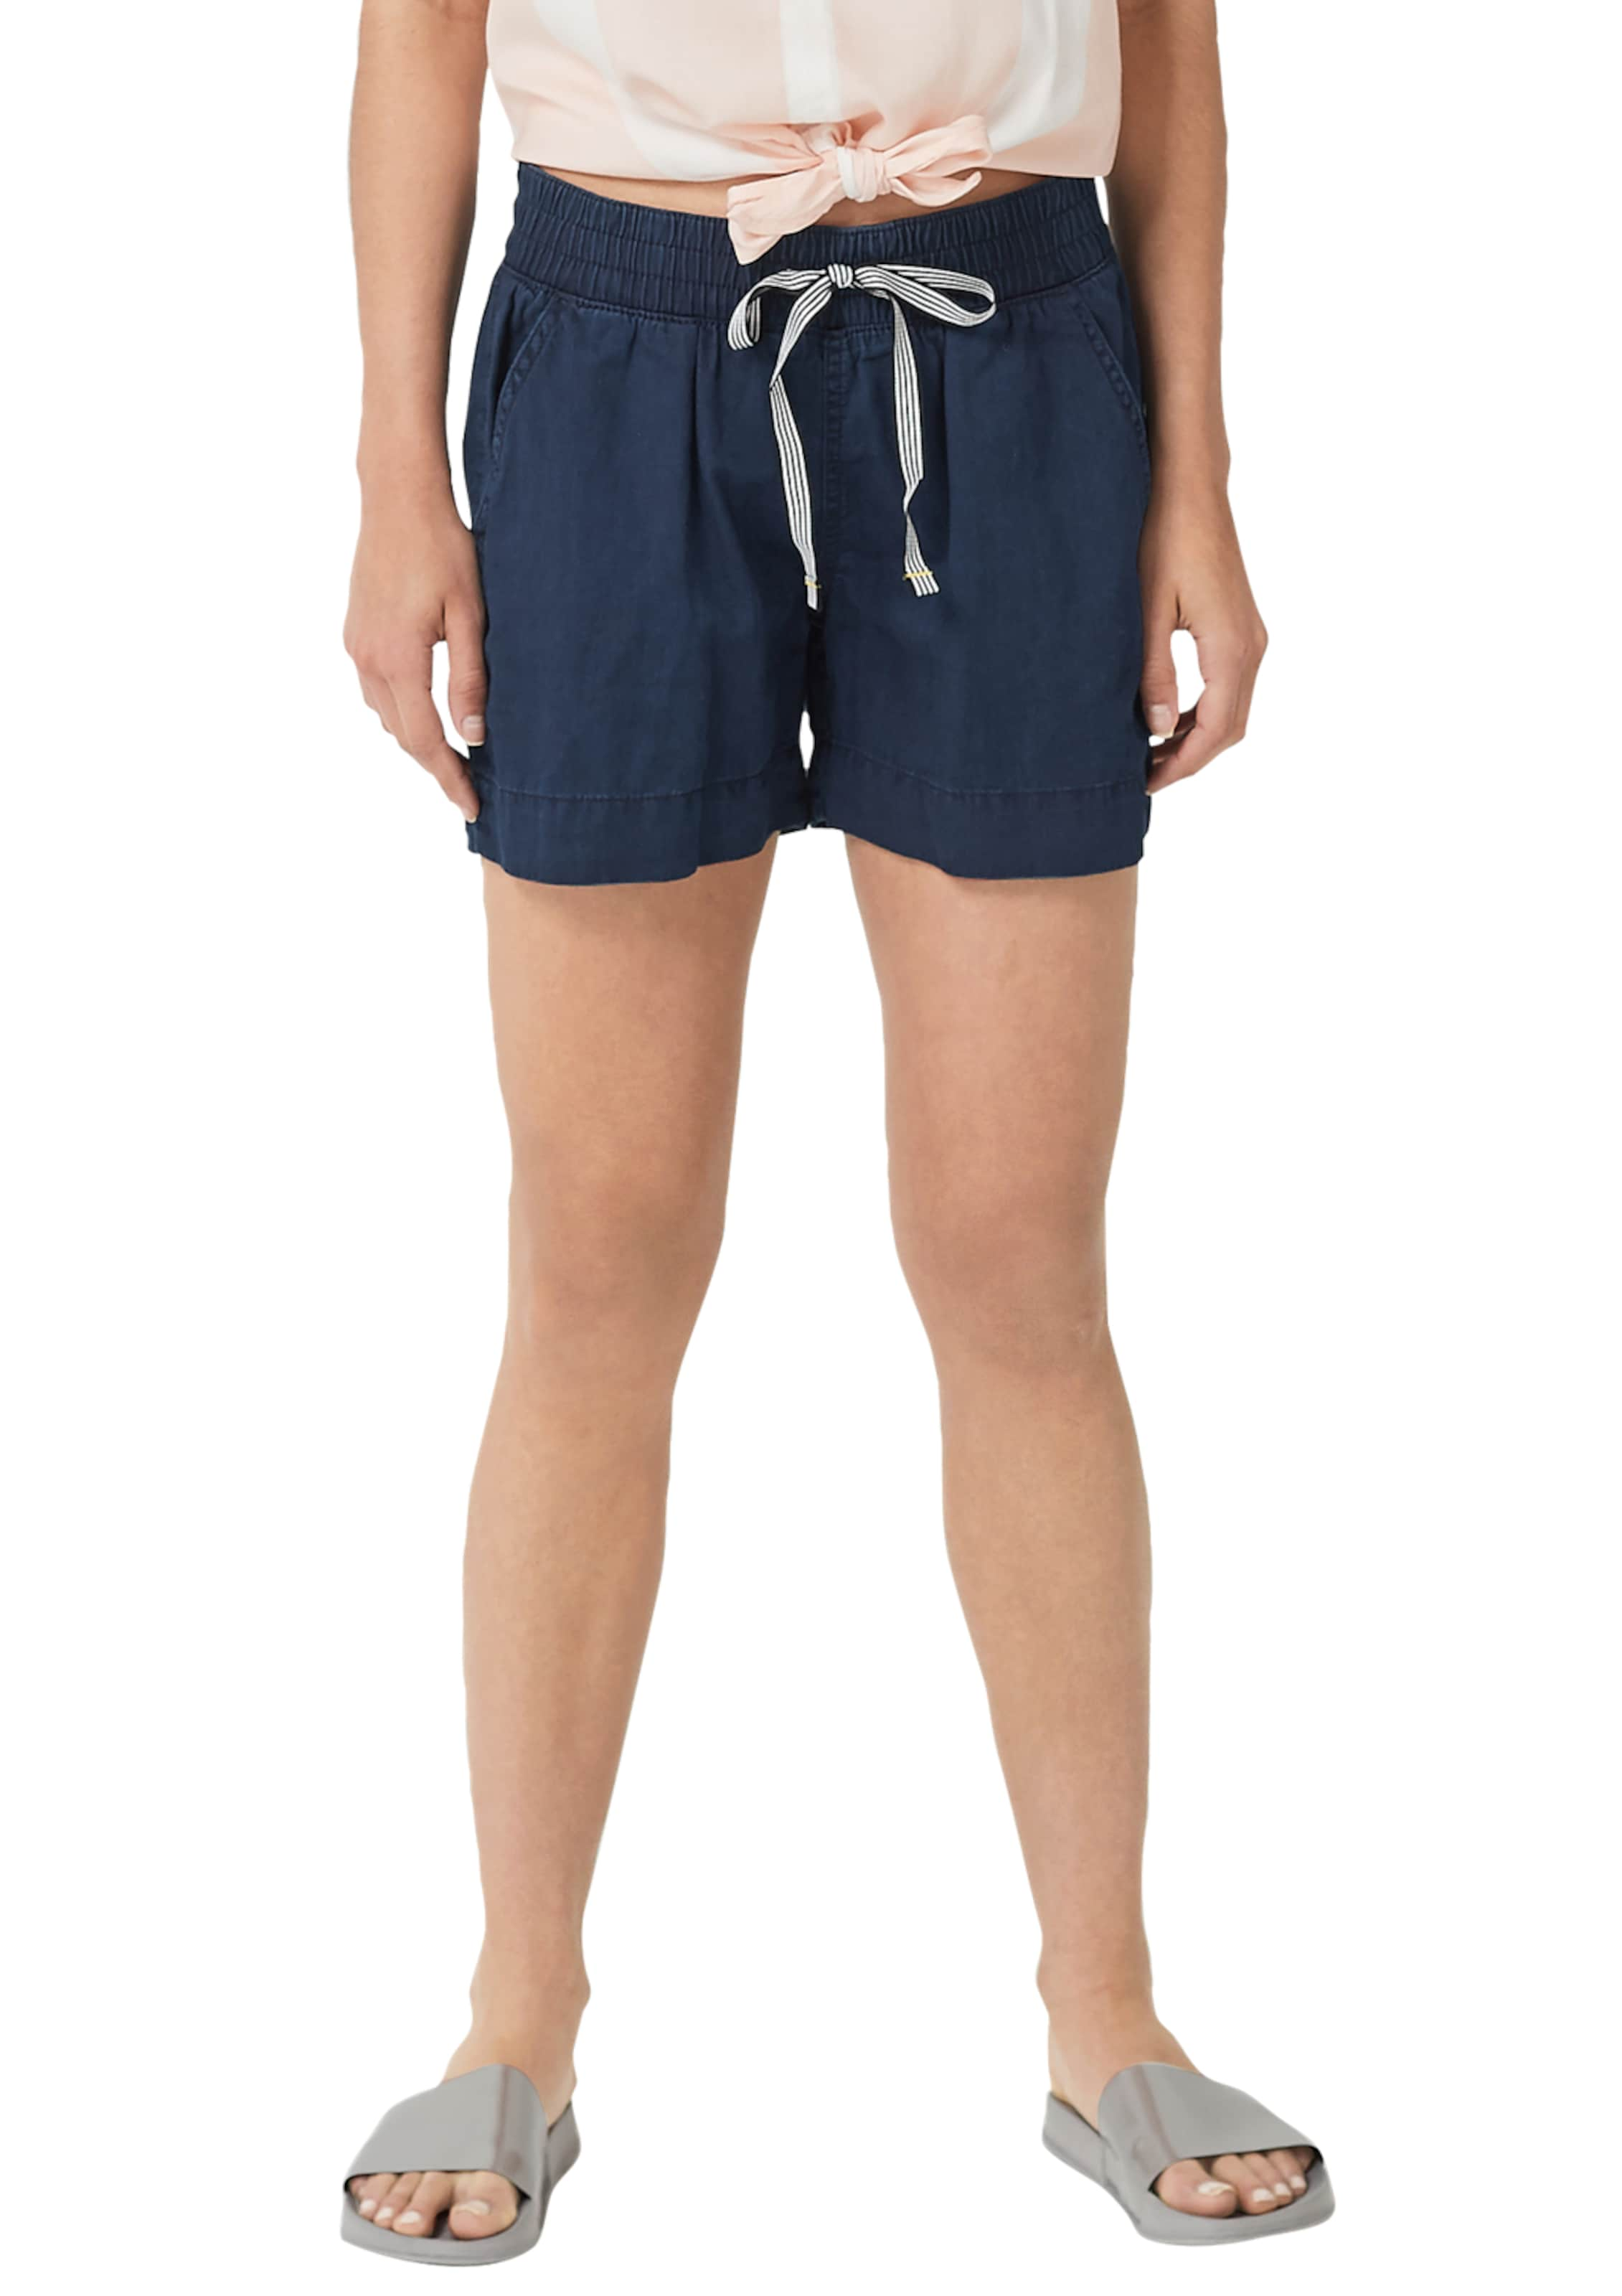 'abby' Dunkelblau s Denimshorts Q In By Designed YW2I9EDH